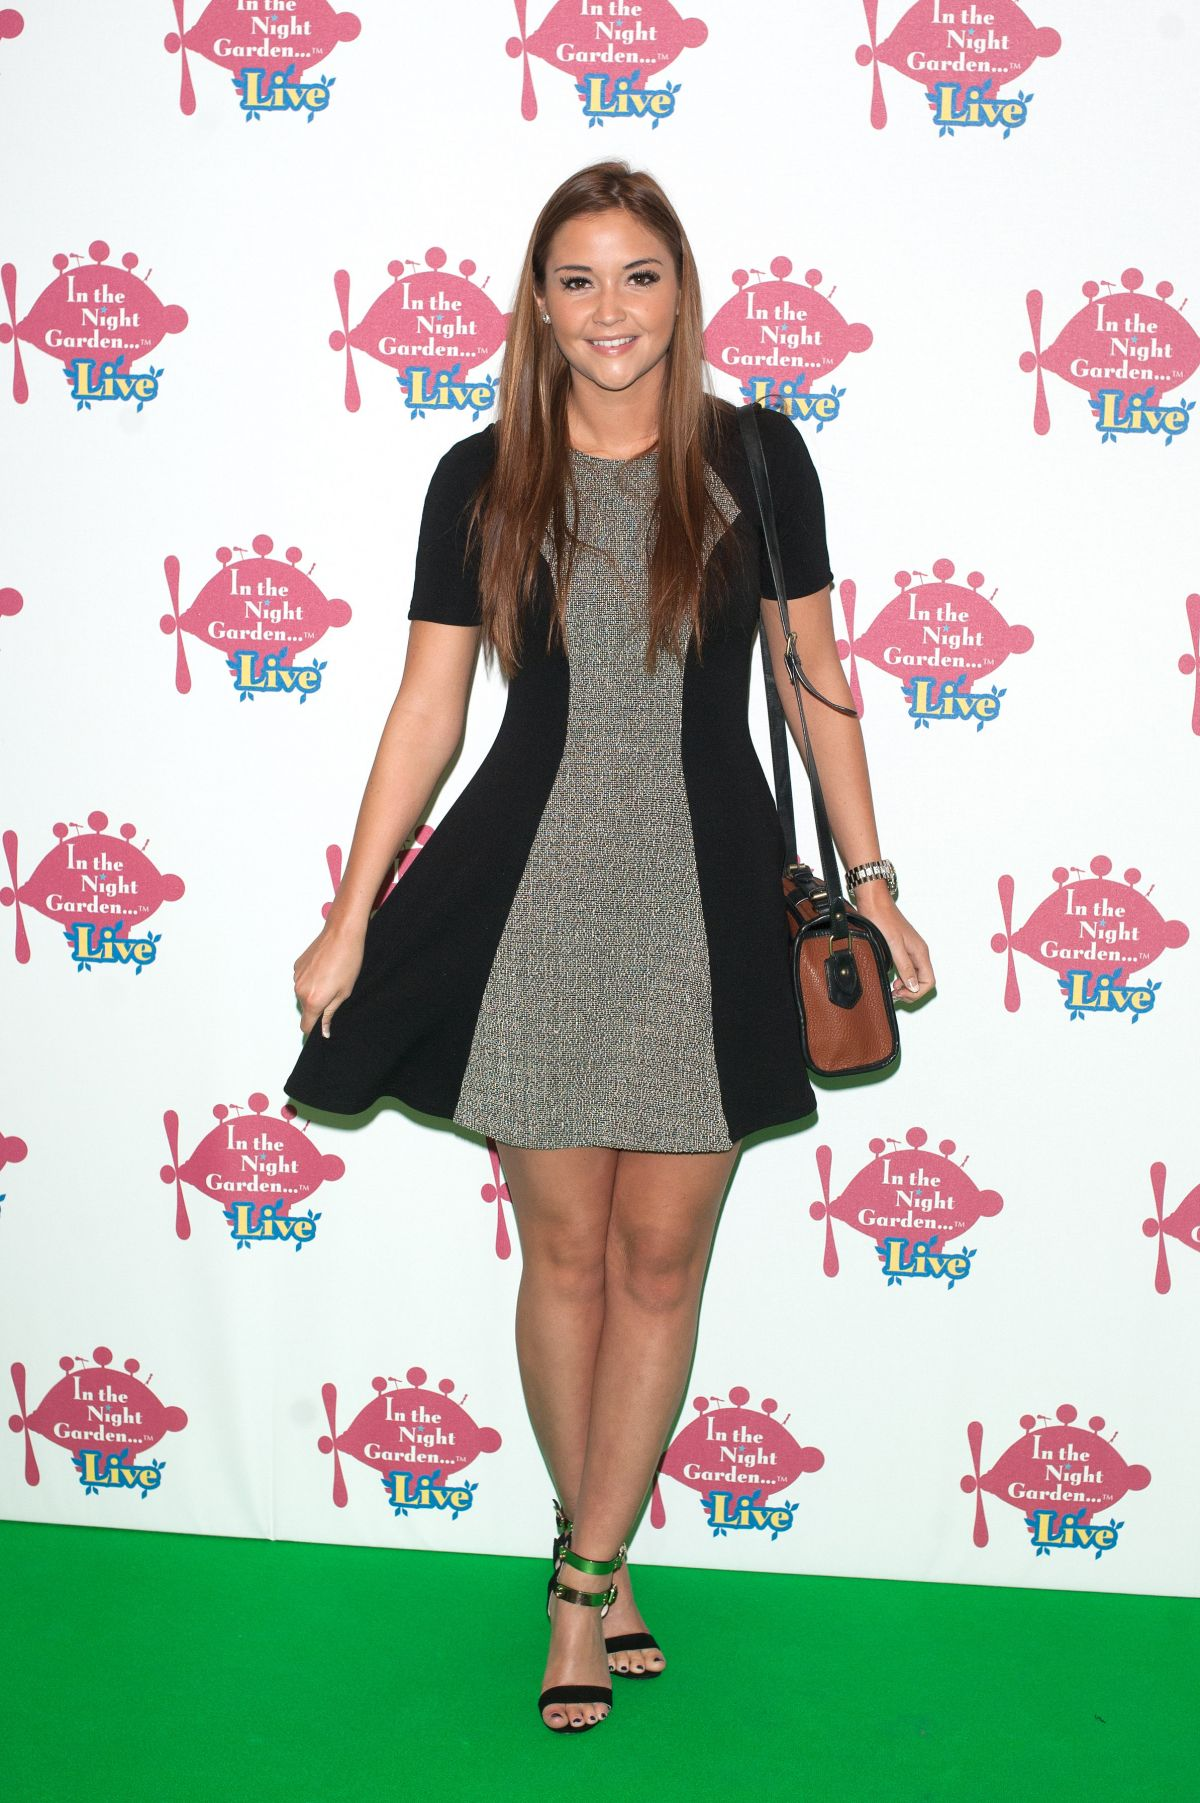 JACQUELINE JOSSA at In the Night Garden Live Event in London